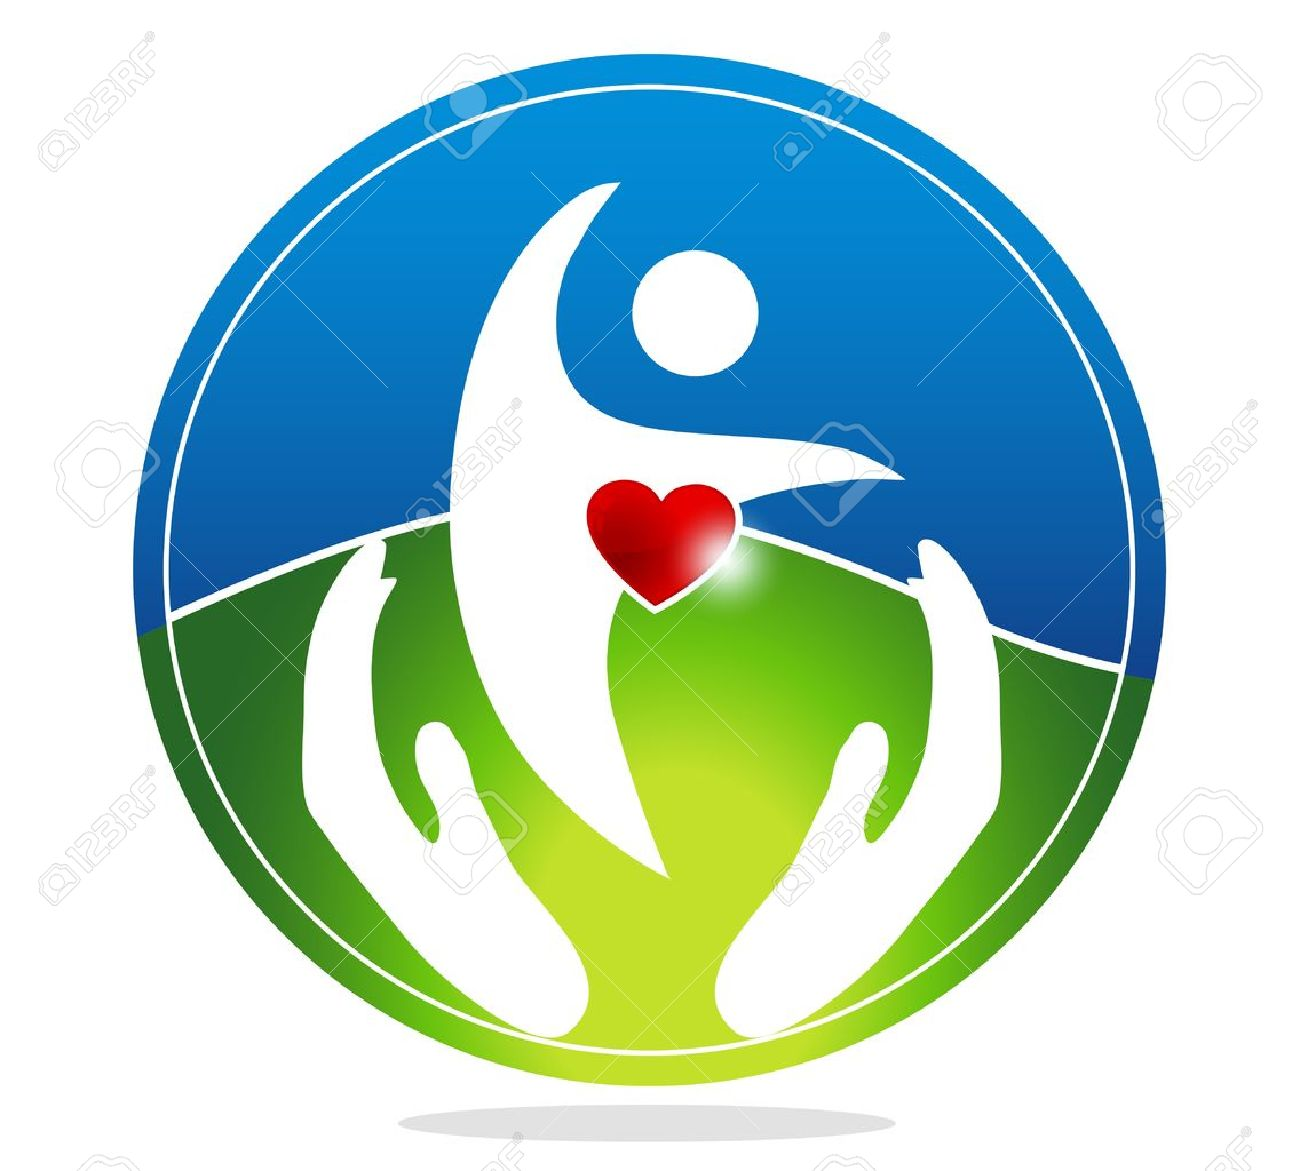 Healthy human and healthy heart symbol the heart shape symbolizes healthy human and healthy heart symbol the heart shape symbolizes healthy heart beating and healthy buycottarizona Image collections